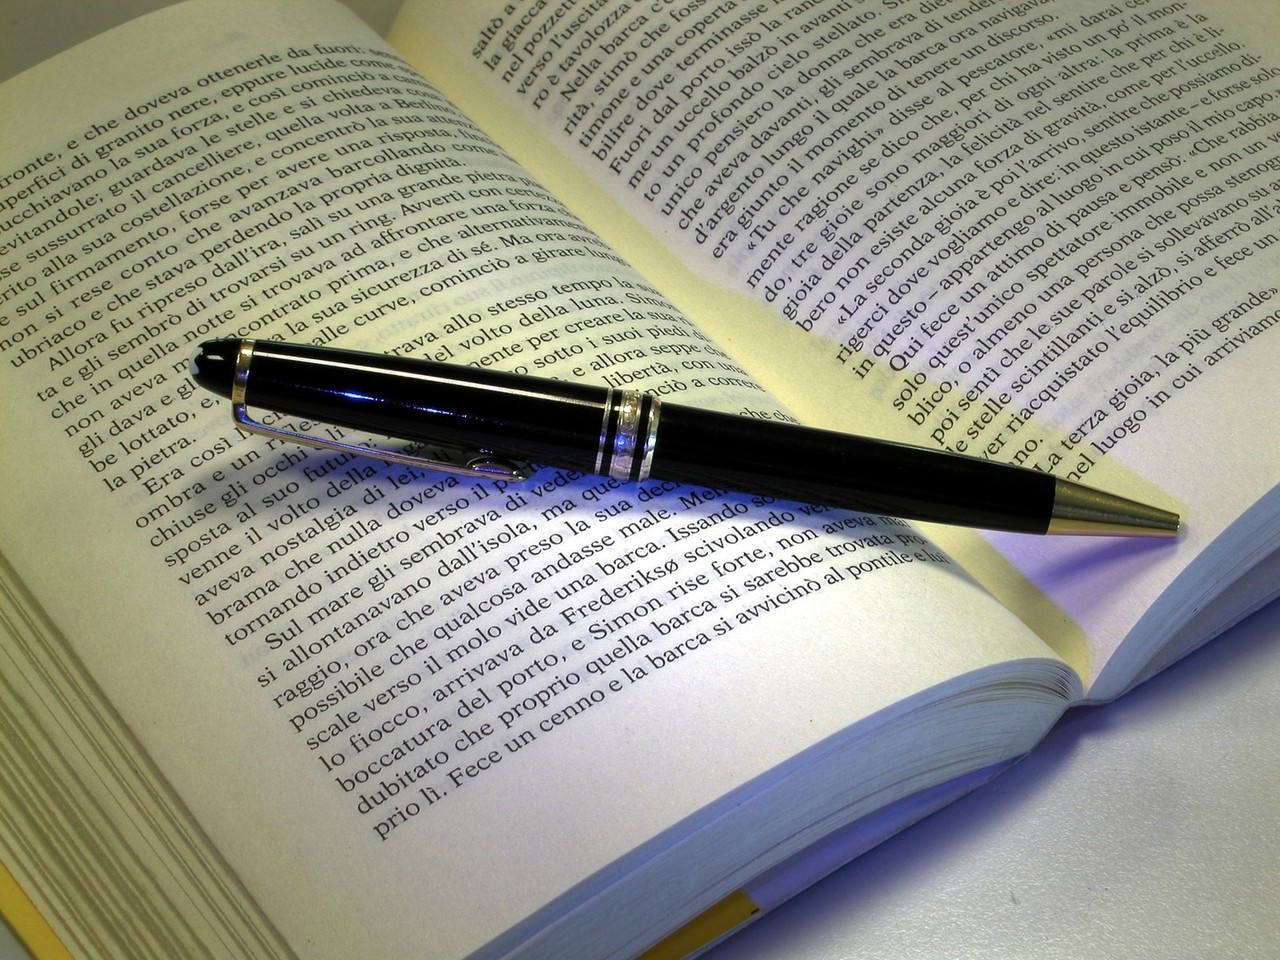 Picture of a pen on a book